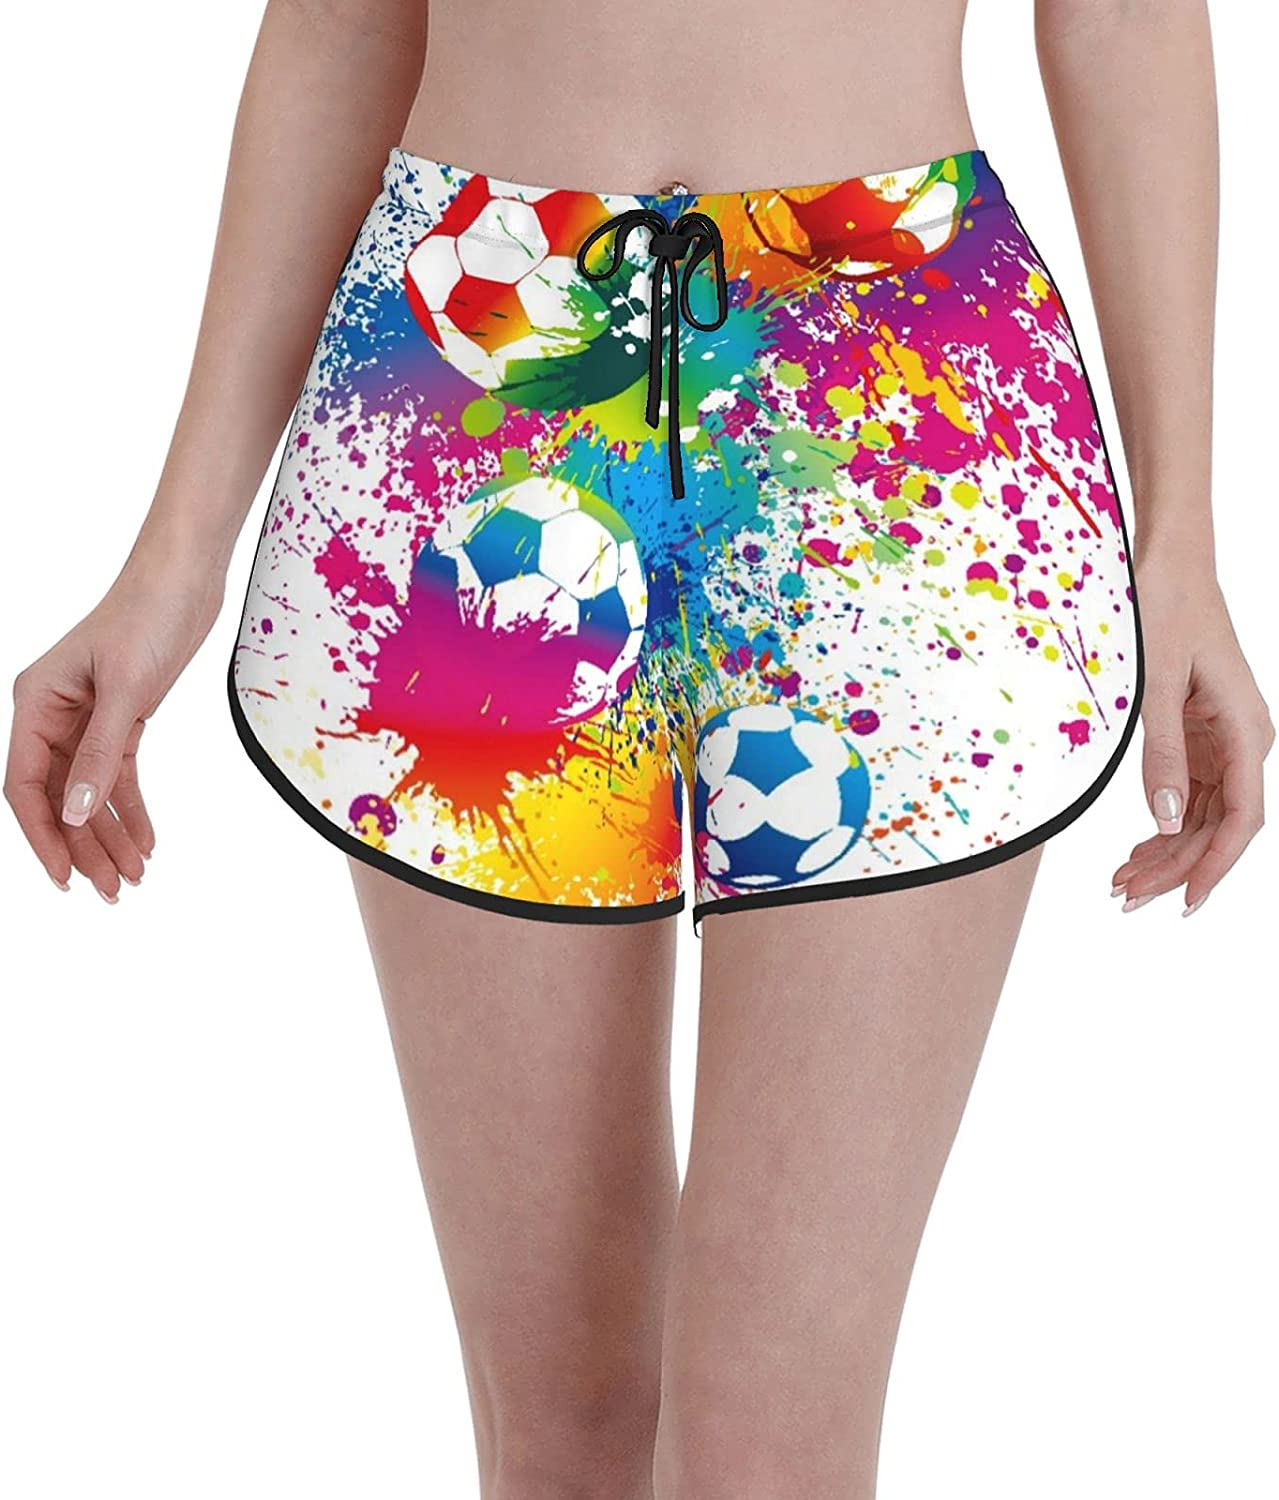 sale Comfortable Casual Board Shorts for Girls Women Surprise price Colored Splashes